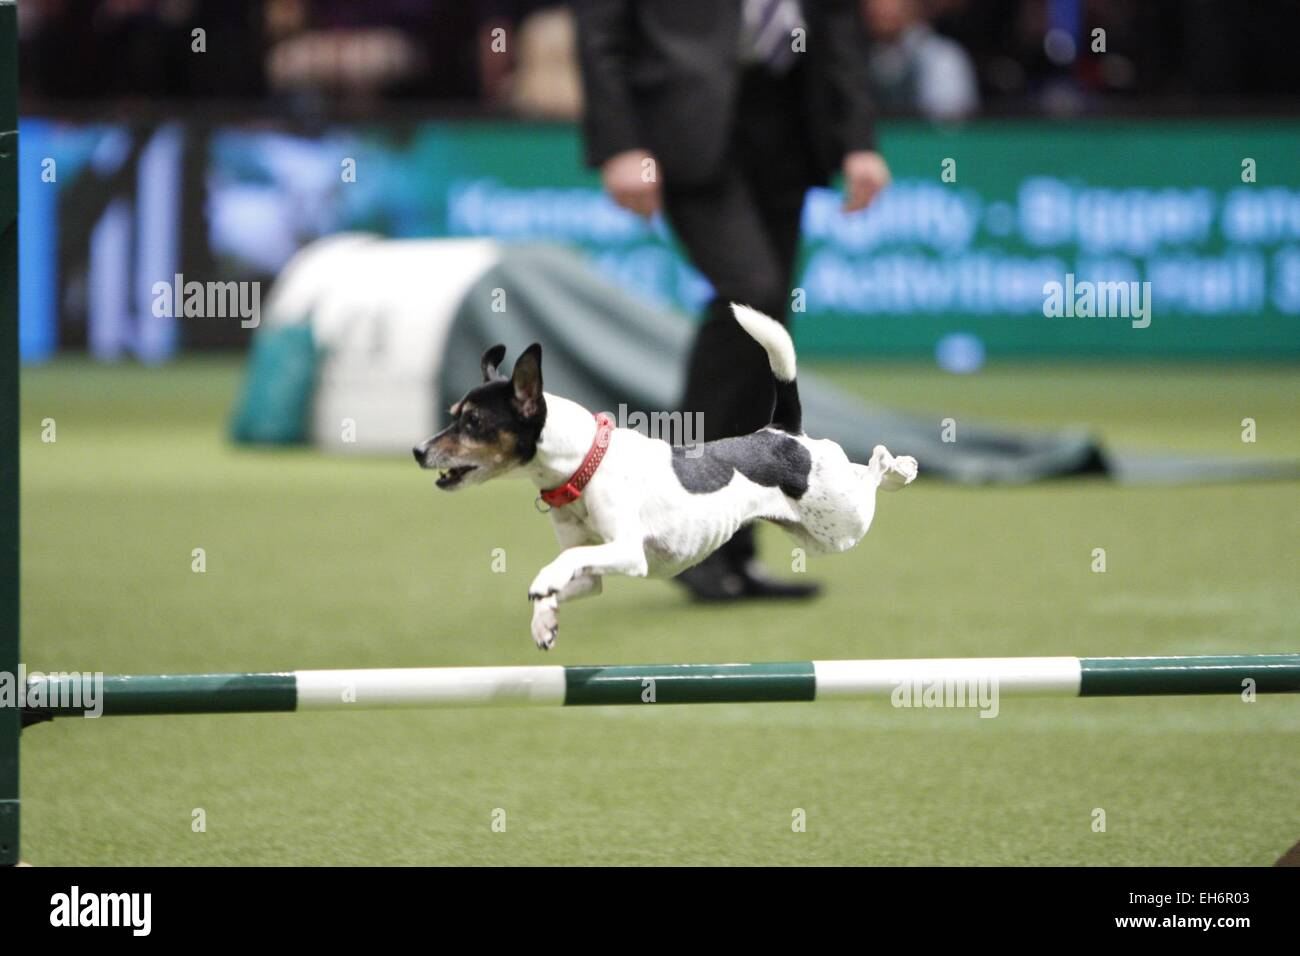 Trade Stands Crufts 2015 : Terrier crufts dog show stock photos terrier crufts dog show